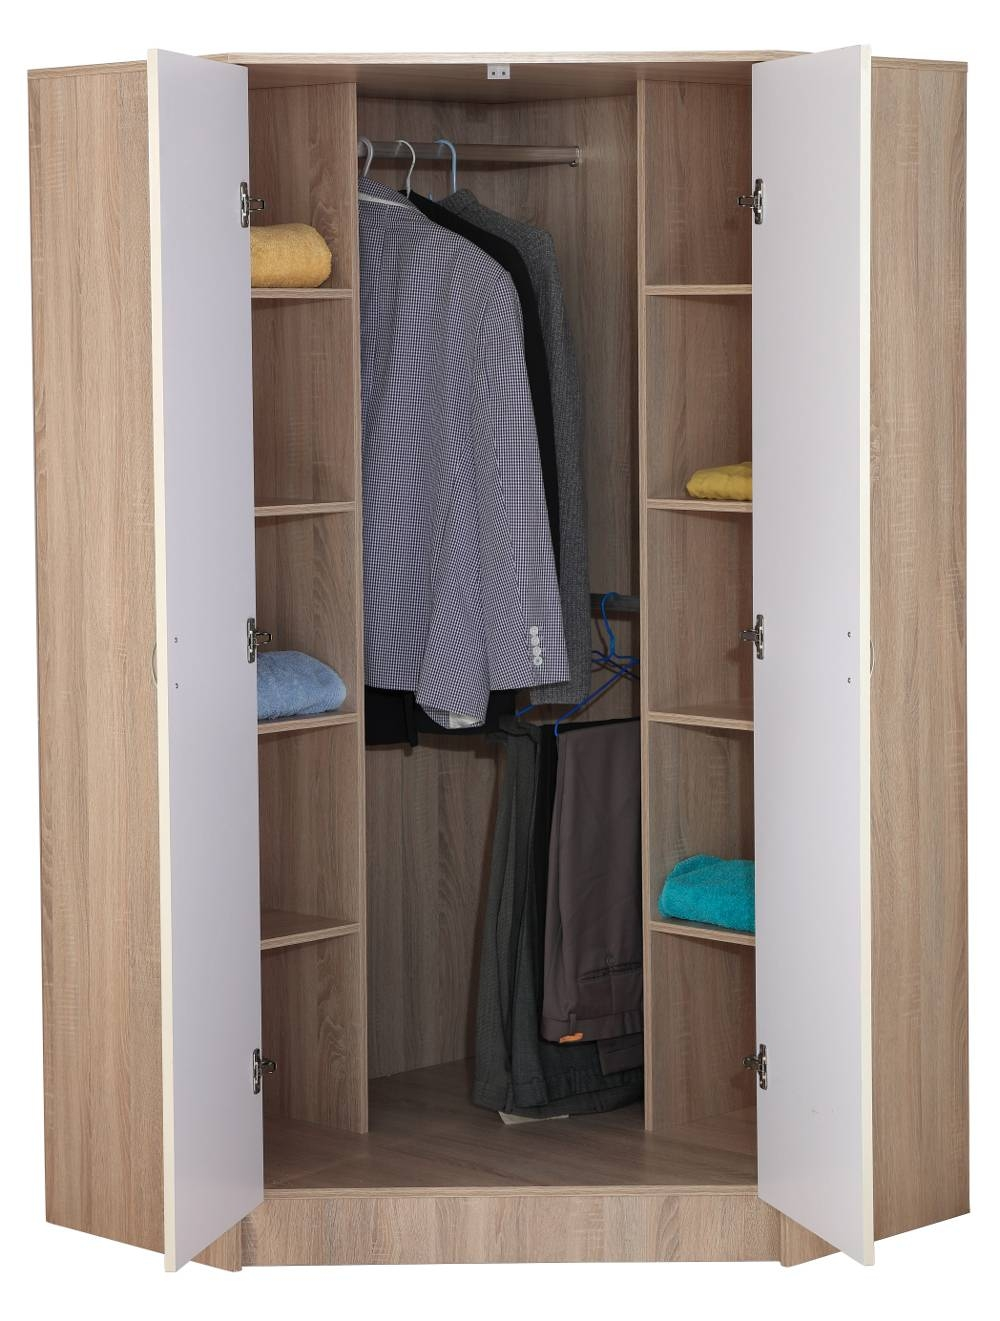 Kanya 2 Door Corner Wardrobe - Sen Furniture for 1 Door Corner Wardrobes (Image 8 of 15)